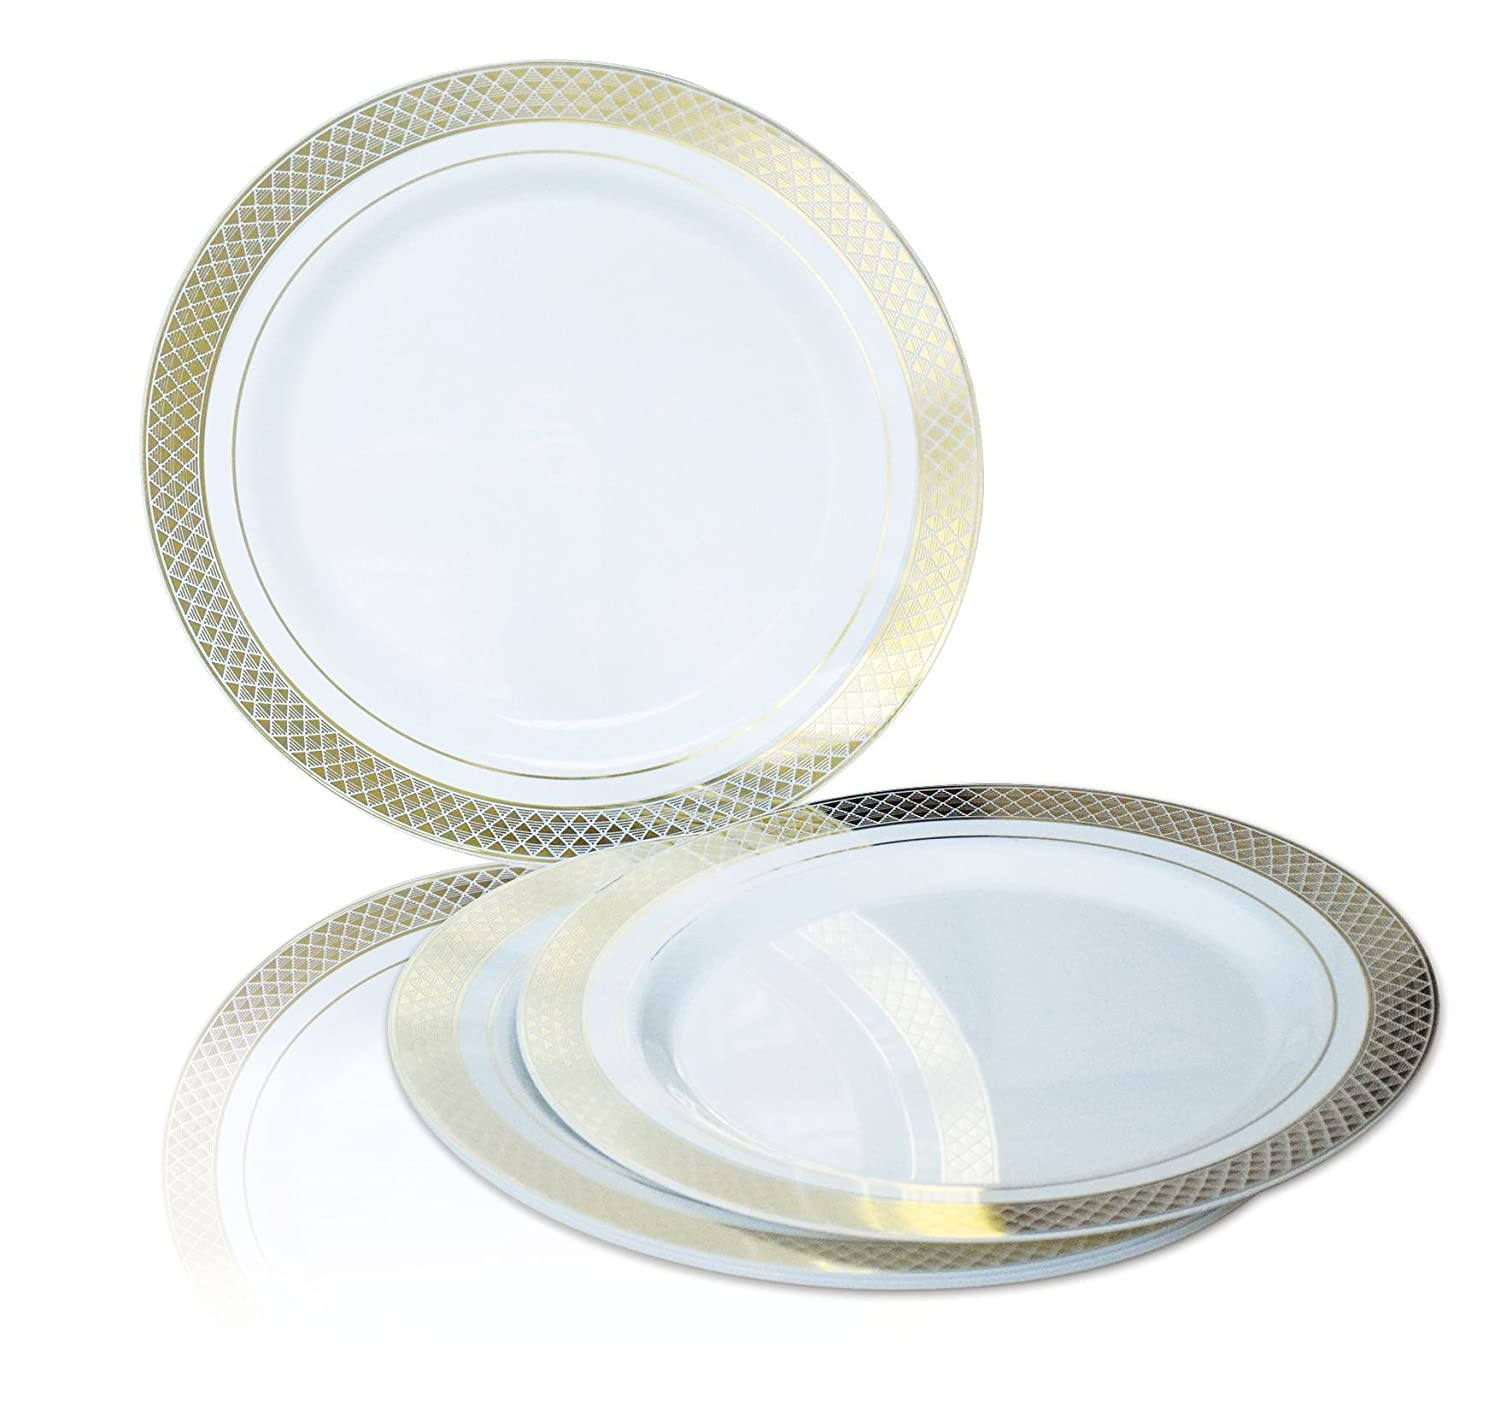 Amazon.com   OCCASIONS   720 PCS / 120 GUEST Wedding Disposable Plastic Plate and Silverware Combo Set ( Celebration white / gold Plates Gold Silverware) ...  sc 1 st  Amazon.com & Amazon.com: